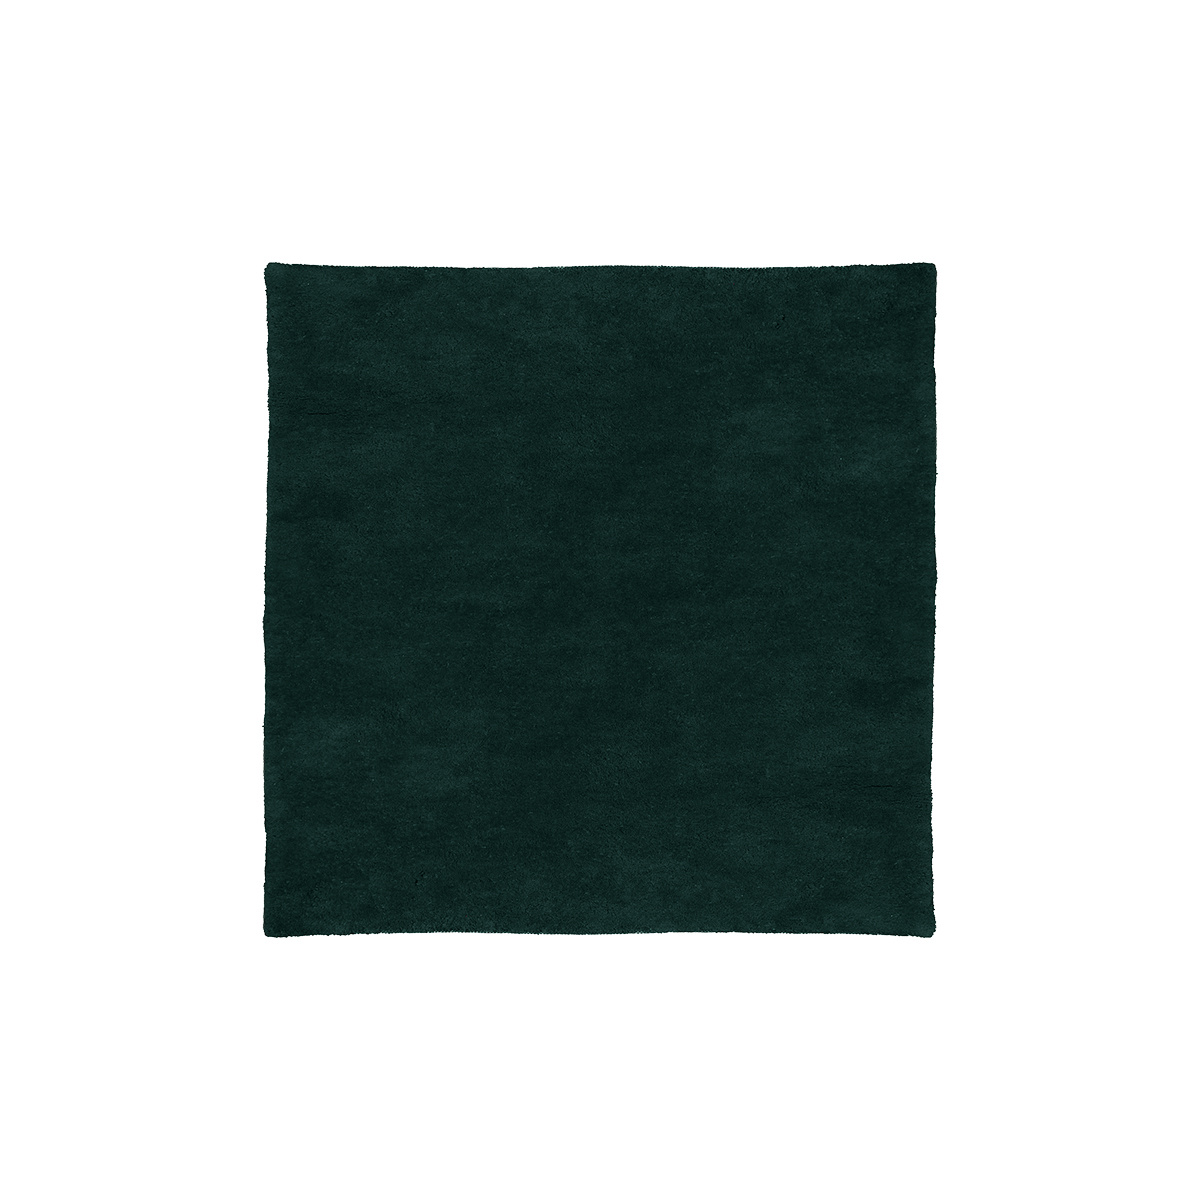 Velluto Rug, Green 200 x 200